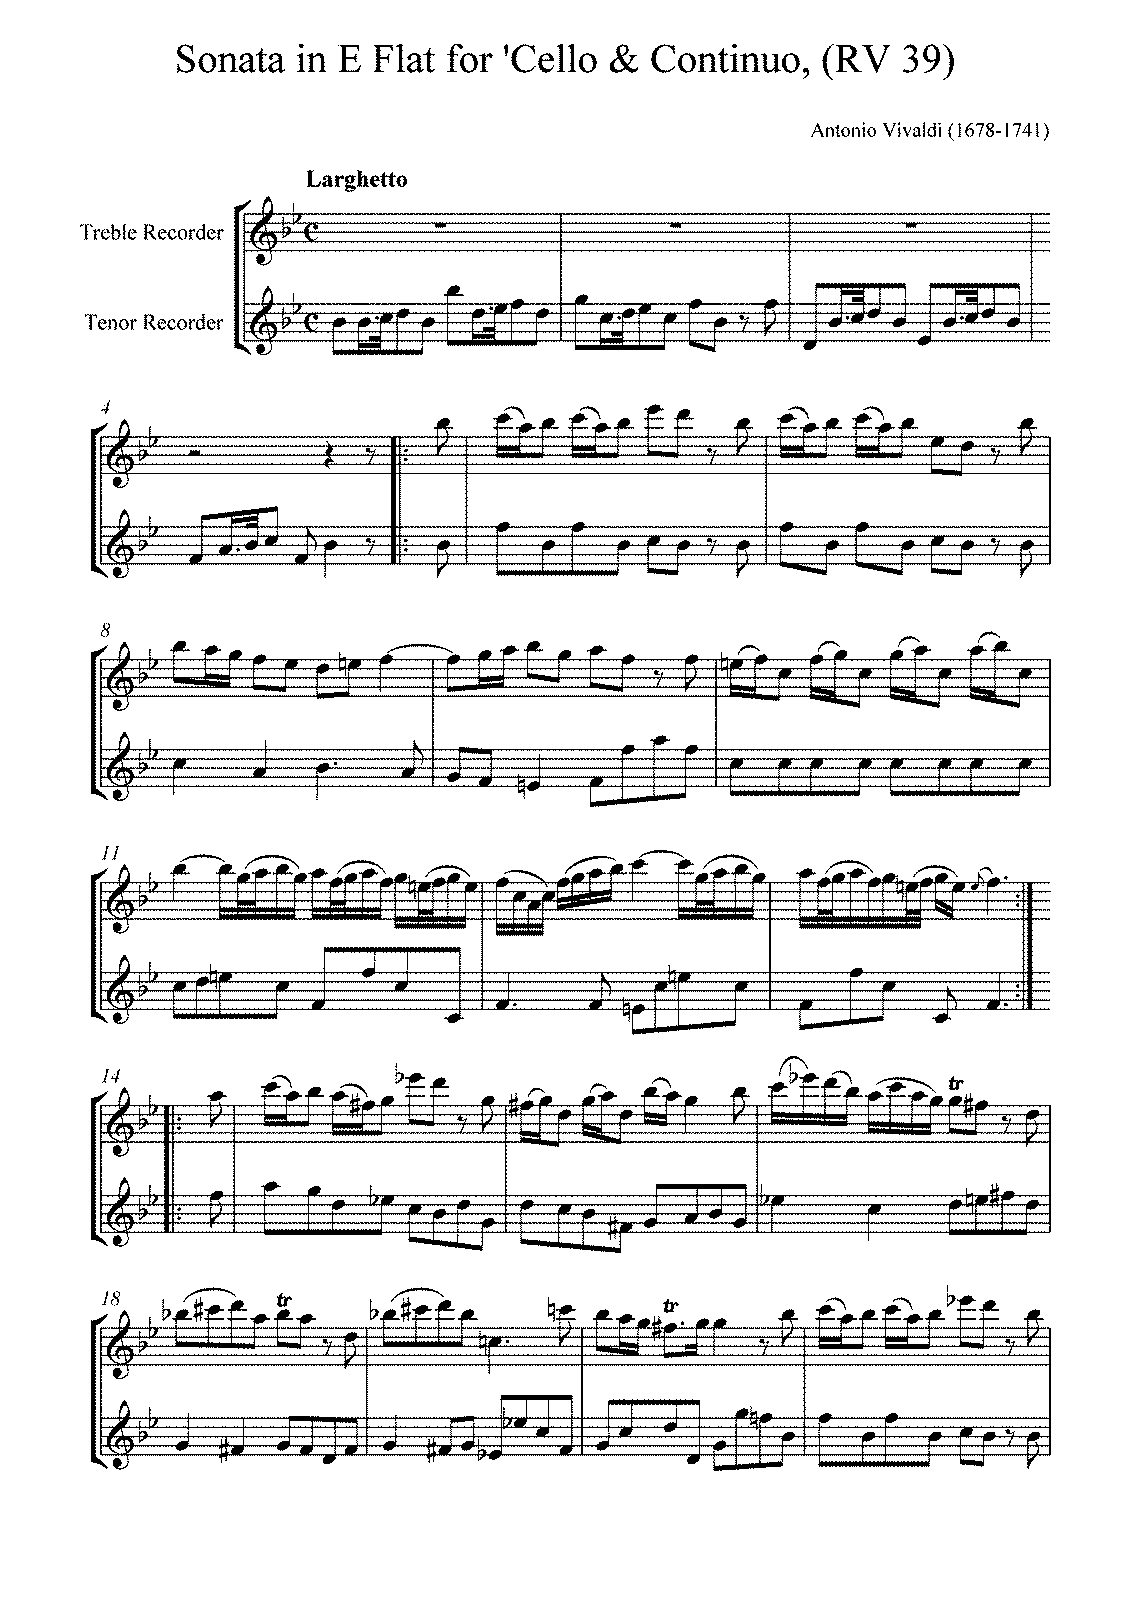 WIMA.f67d-Vivaldi-Cello-Sonata-RV39-Trb-Ten-Score.pdf